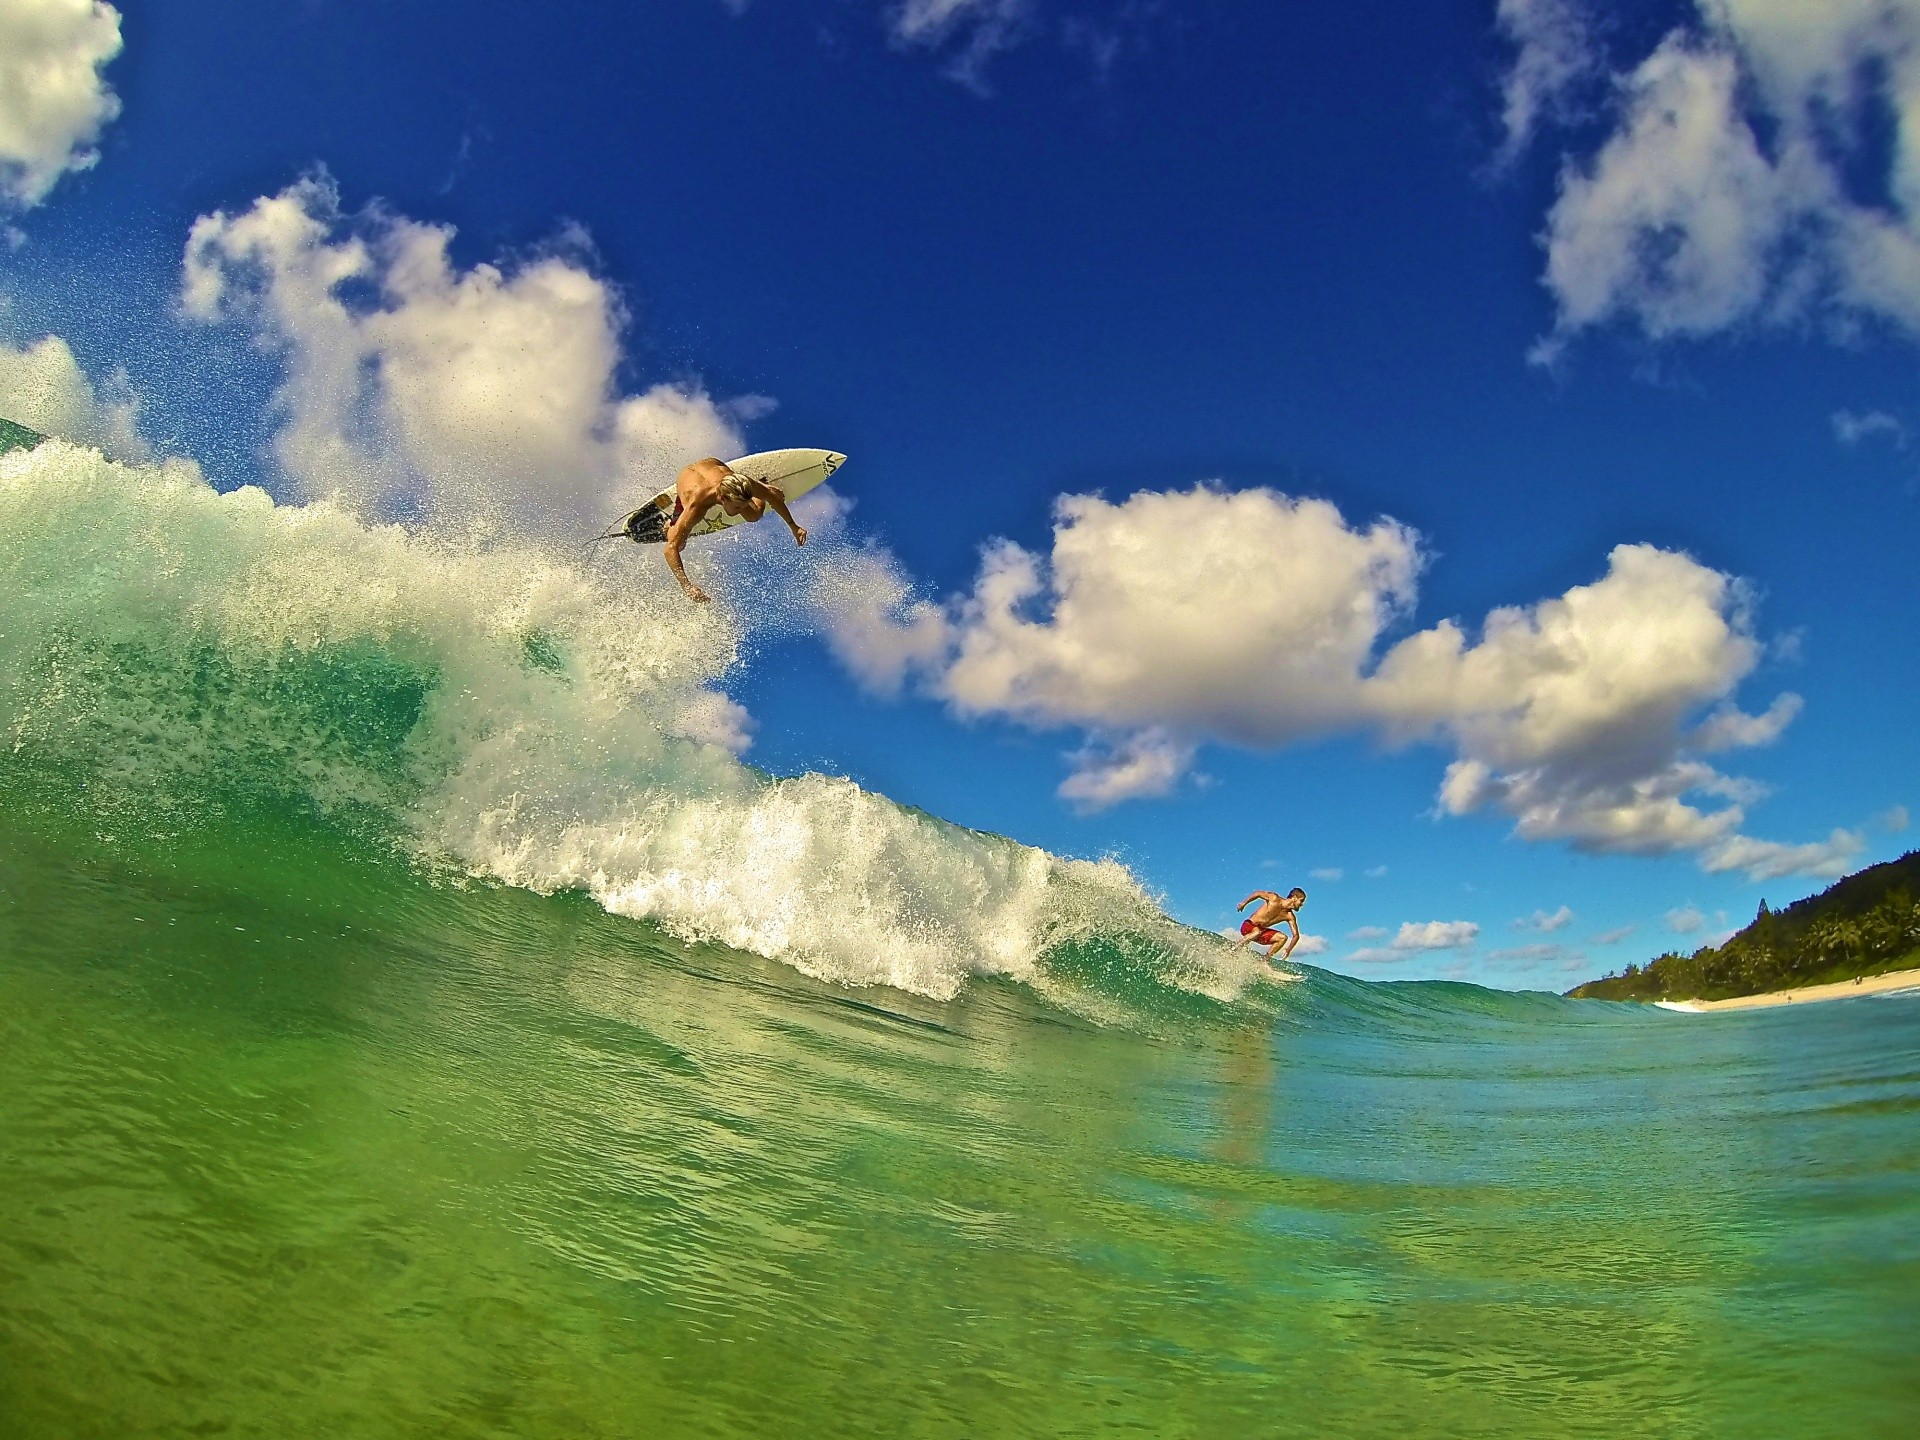 Chris Giacobone's photo of Off-The-Wall